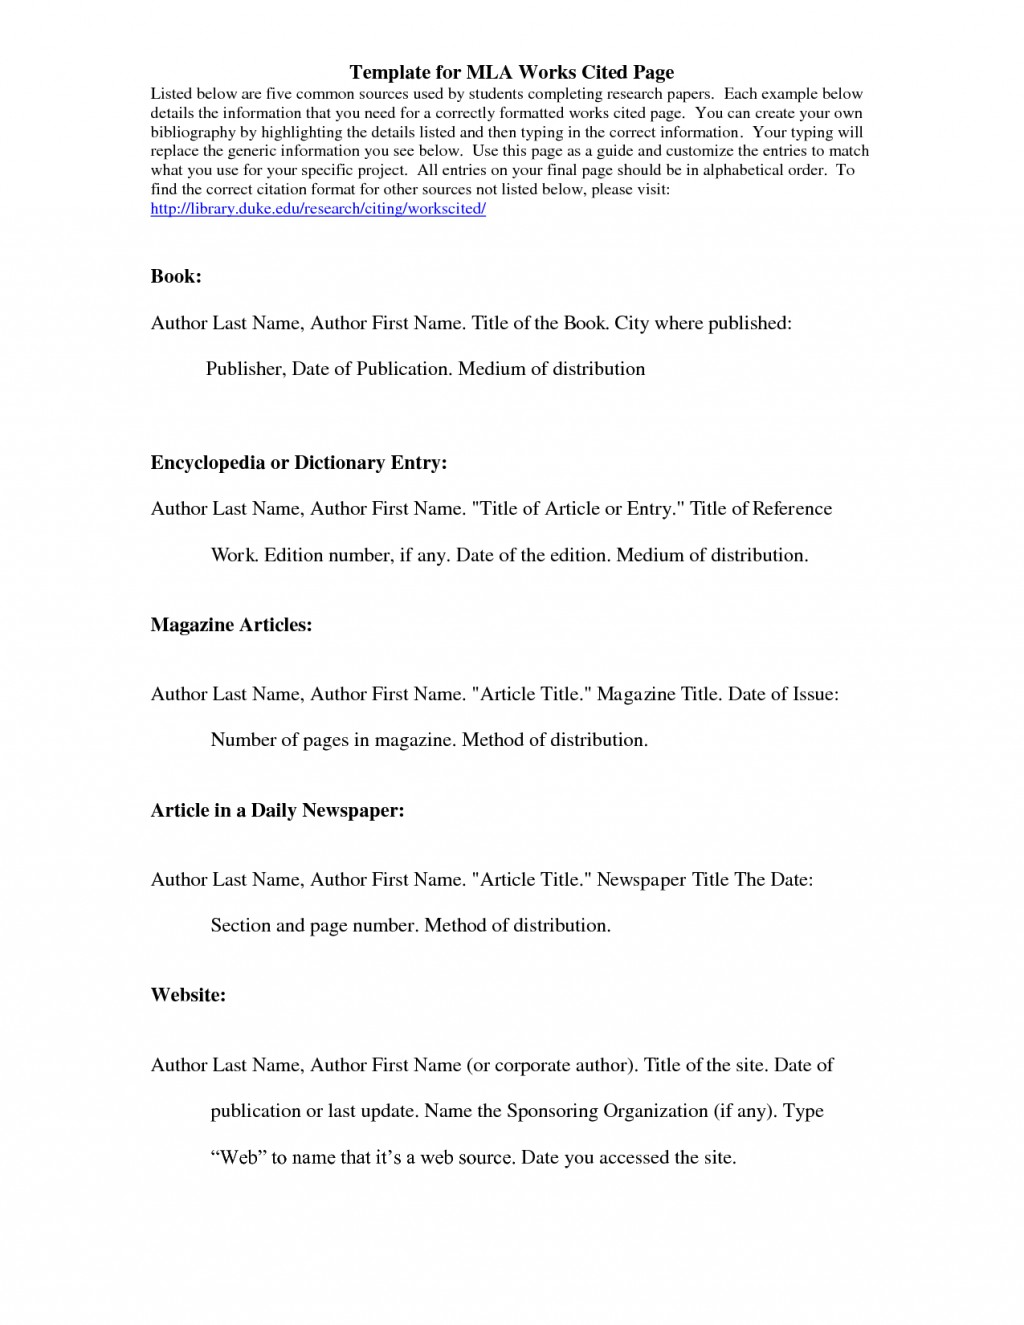 021 Brilliant Ideas Of Writing Research Papers Using Mla Documentation Cute Essay Reference Page Paper How Do You Write In Imposing A Format To Step By Examples Large